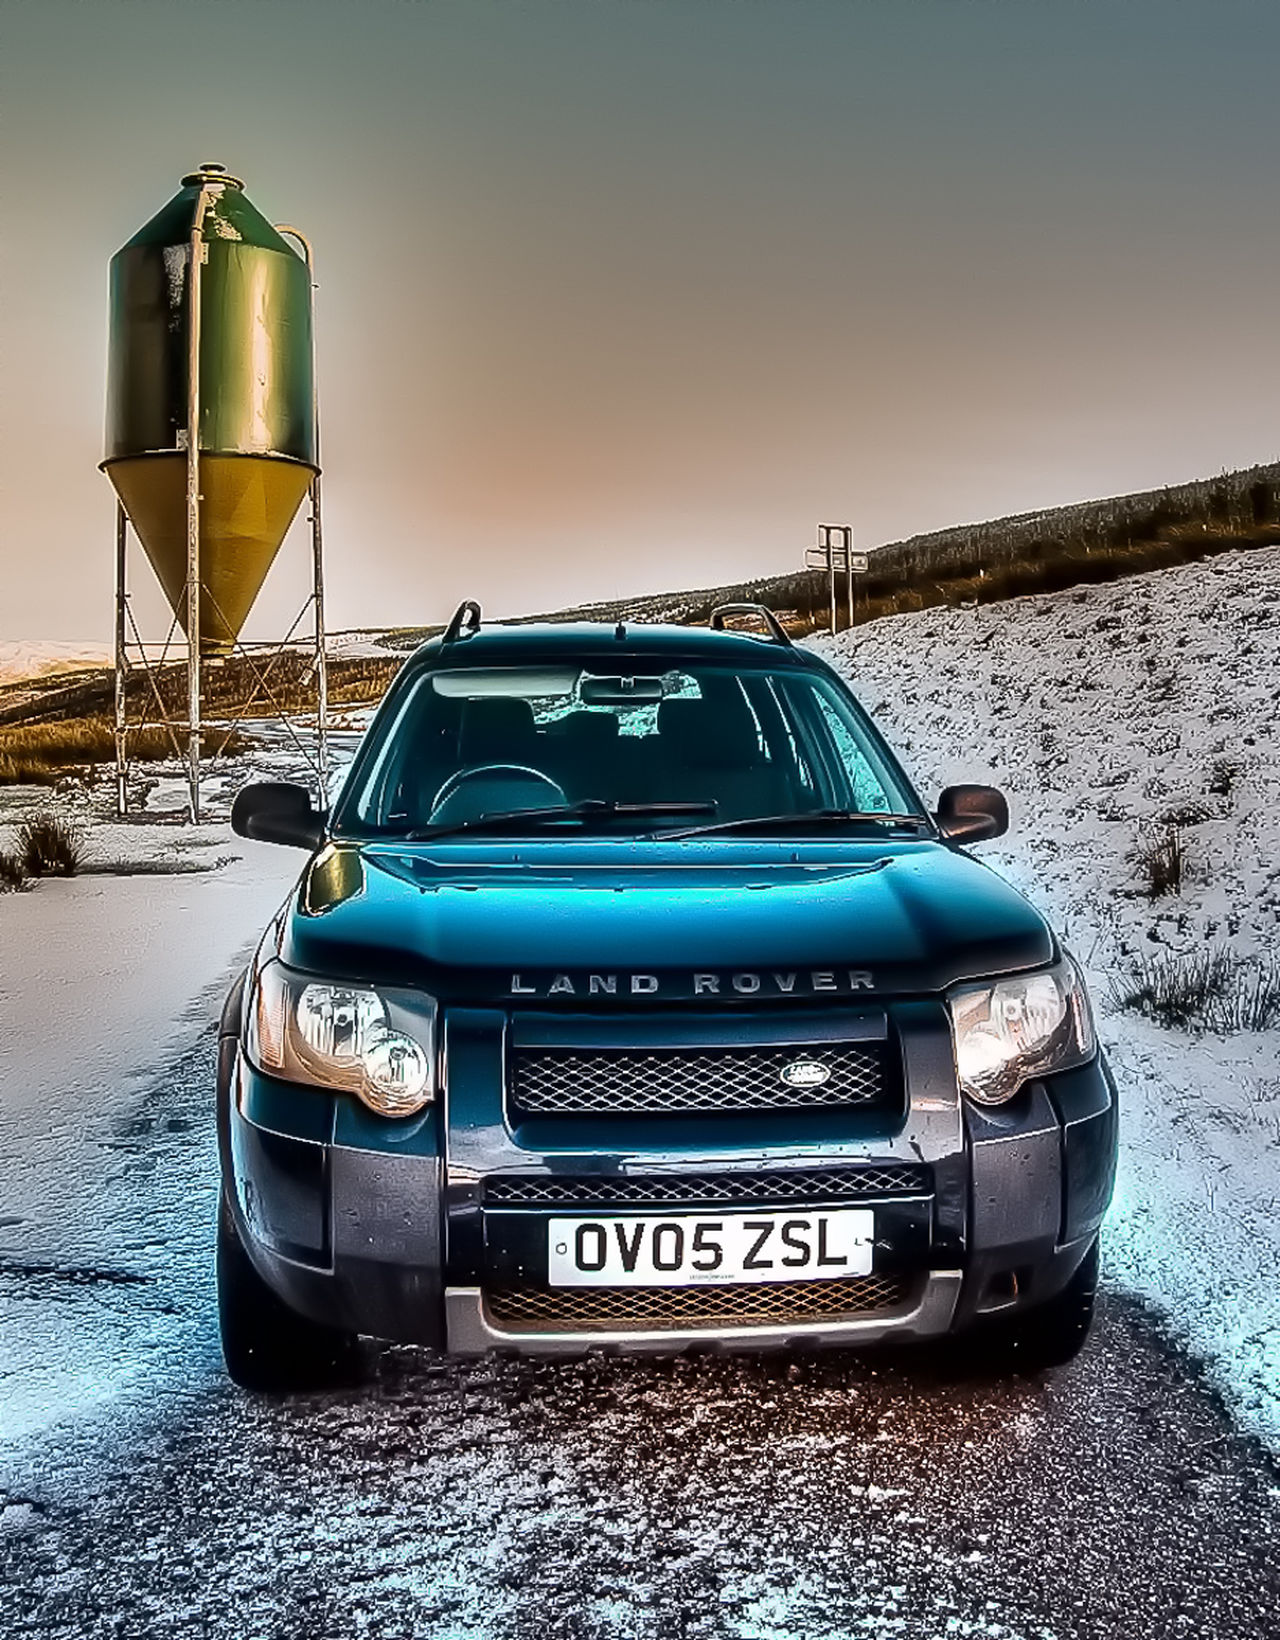 Atmosphere Car Container Hdr_Collection Industrial Landrover  No People Snow Tonemapped